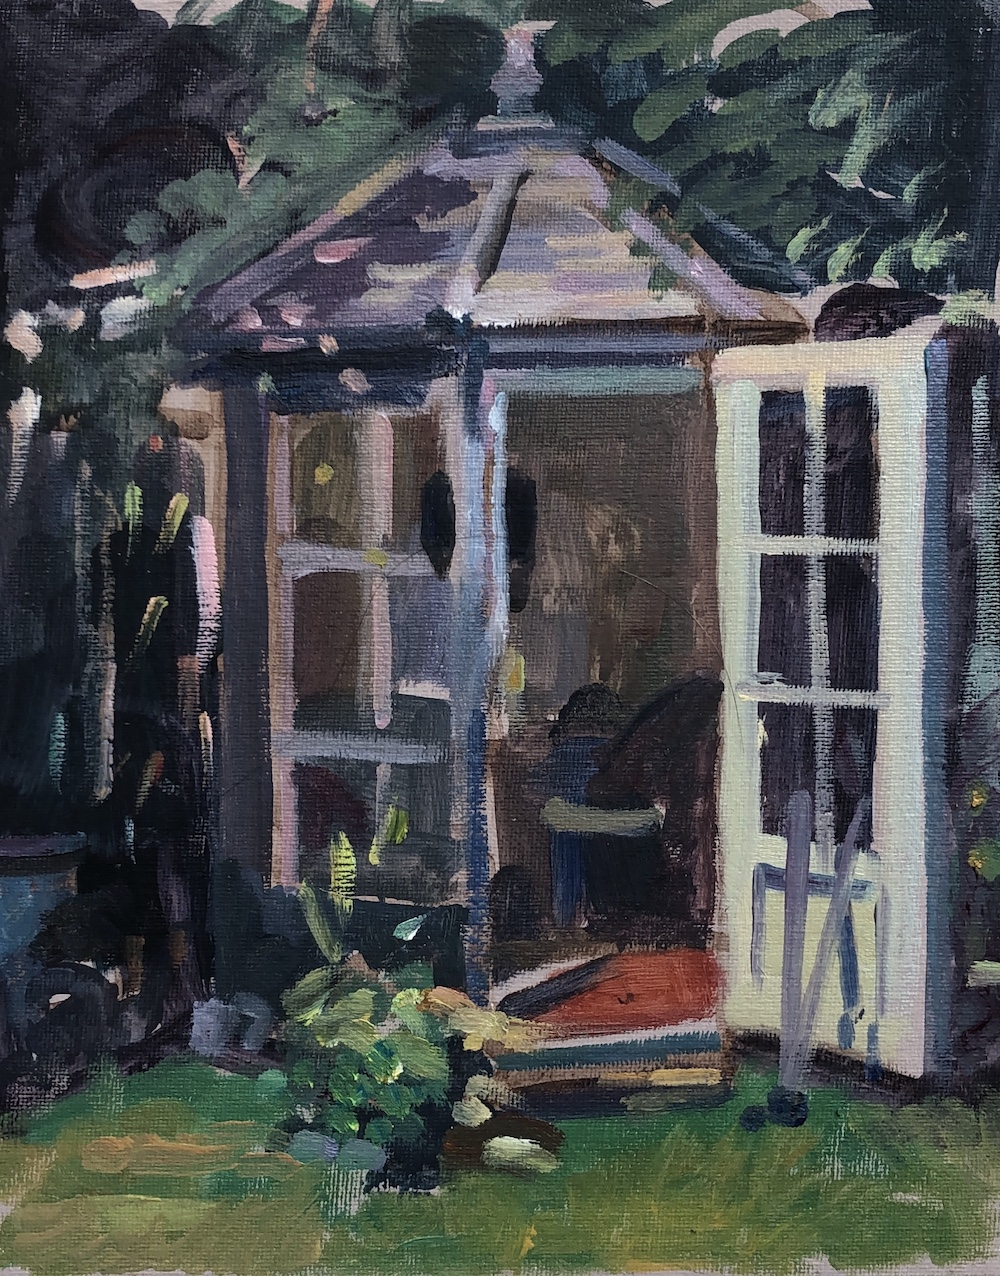 "The lockdown summer house. Farrer Road 8"" x 12"" (SOLD)"